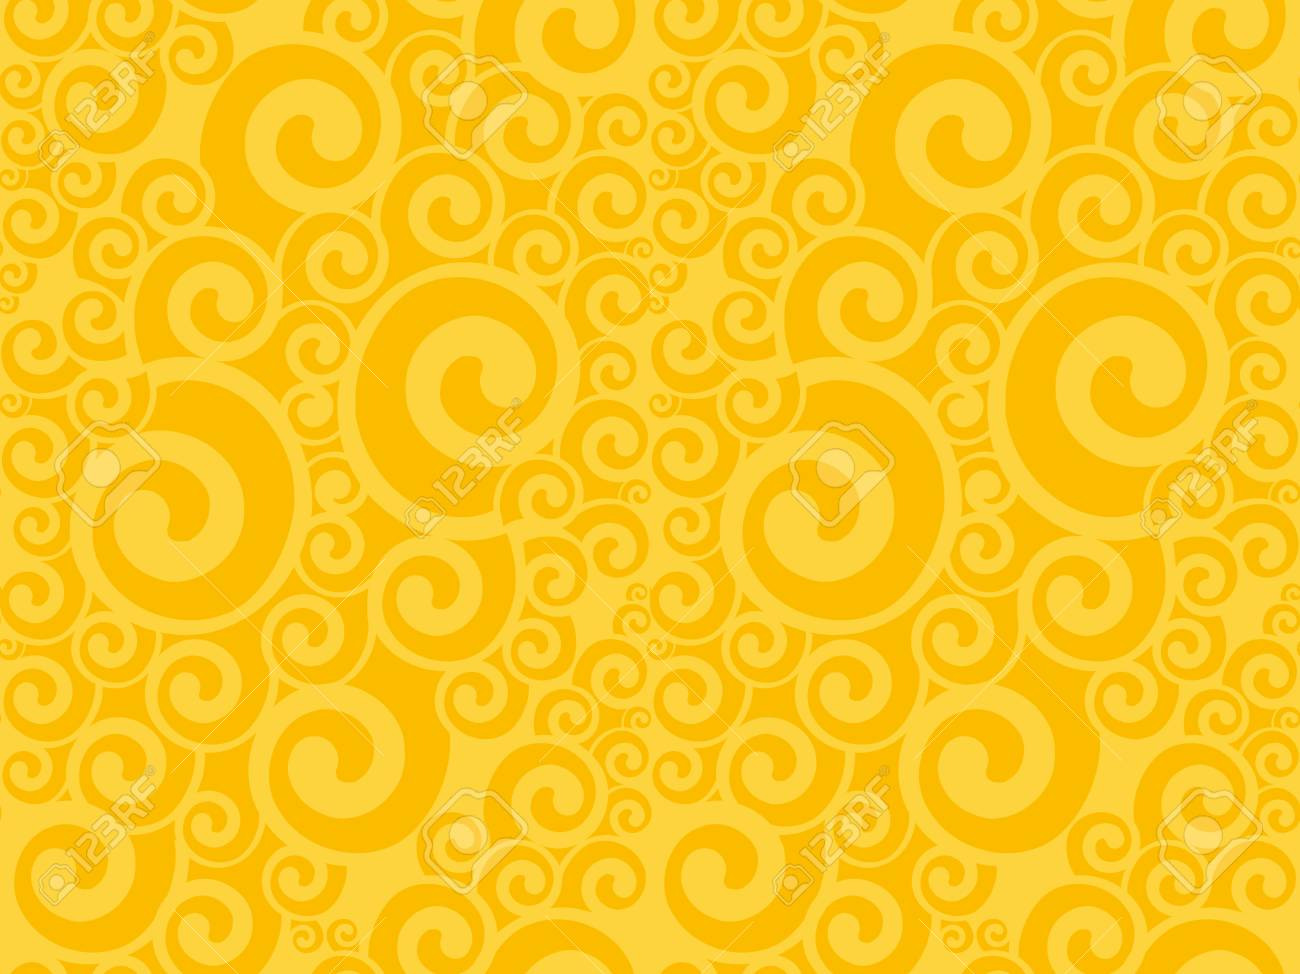 Art Nouveau Yellow Art Nouveau Swirl Seamless Pattern Yellow Abstract Geometry